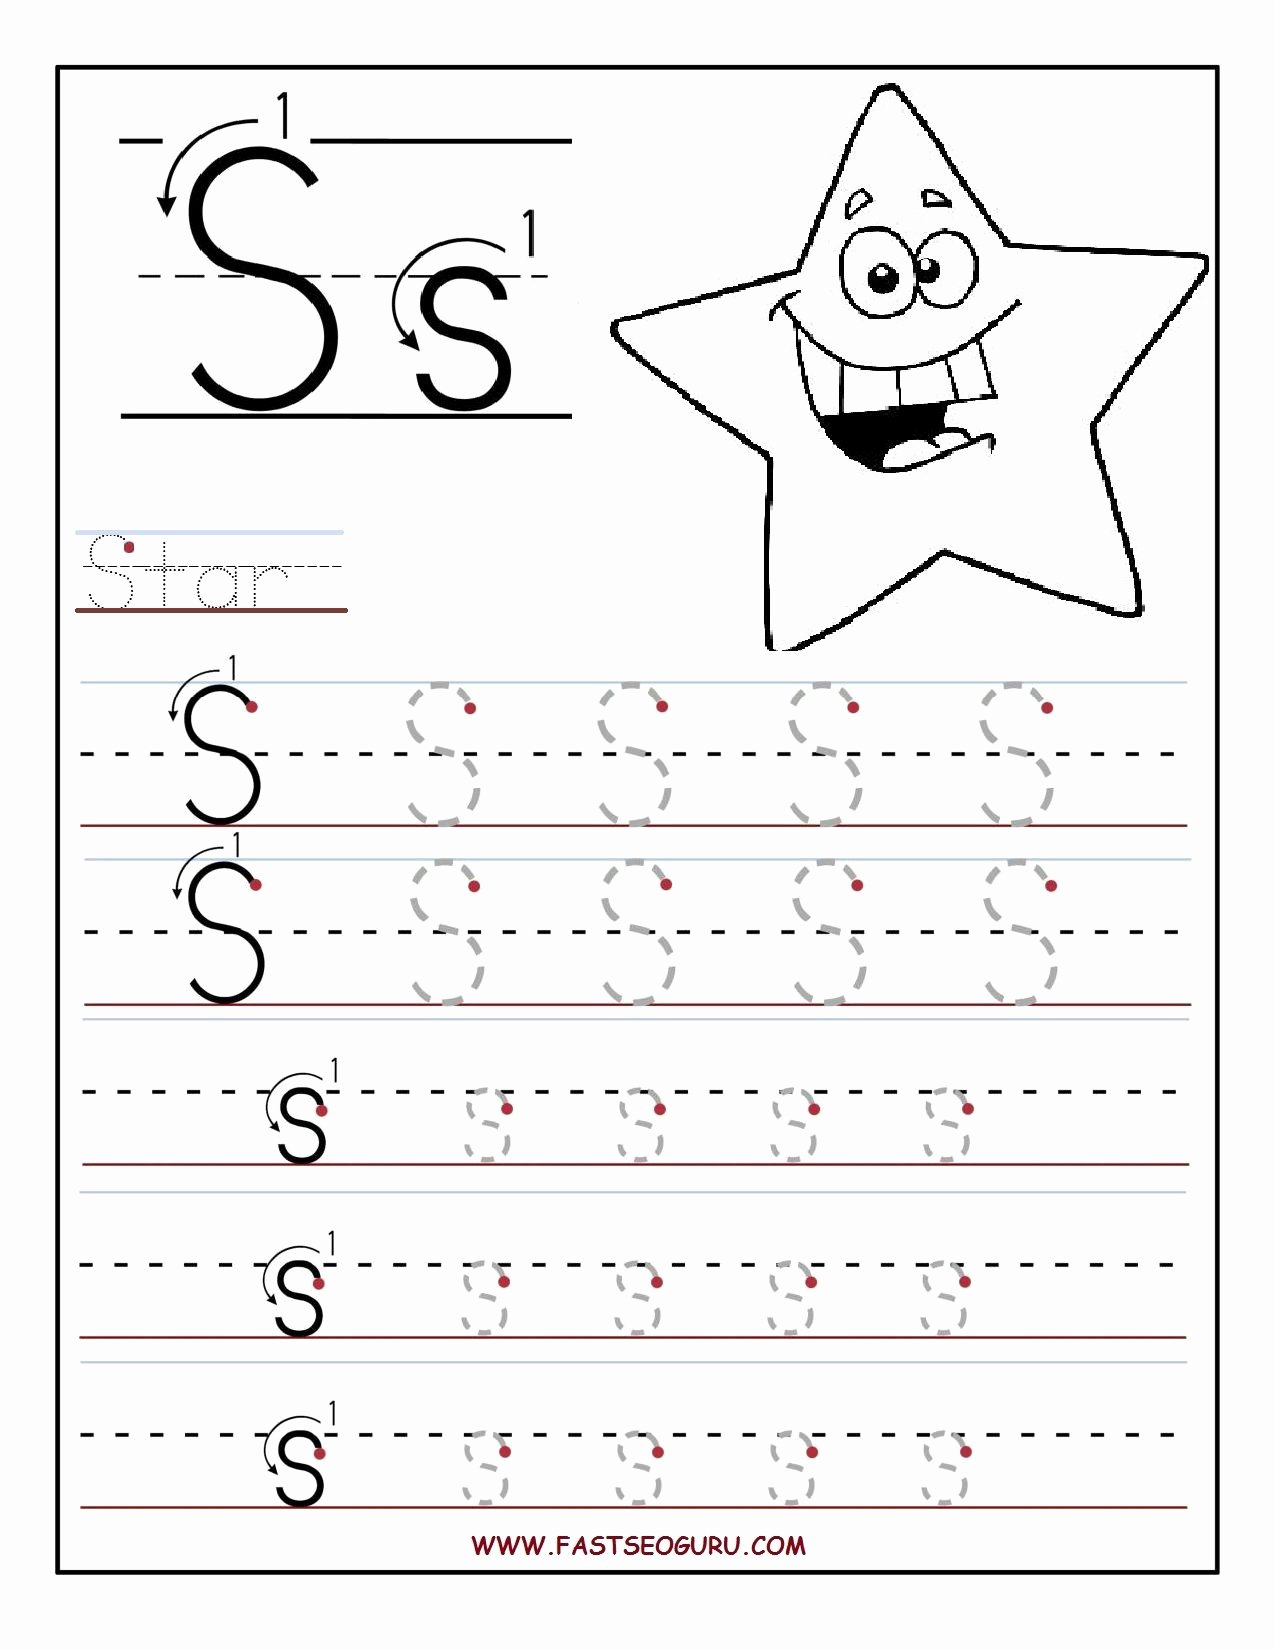 Letter S Worksheets for Preschoolers Fresh Printable Letter S Tracing Worksheets for Preschool